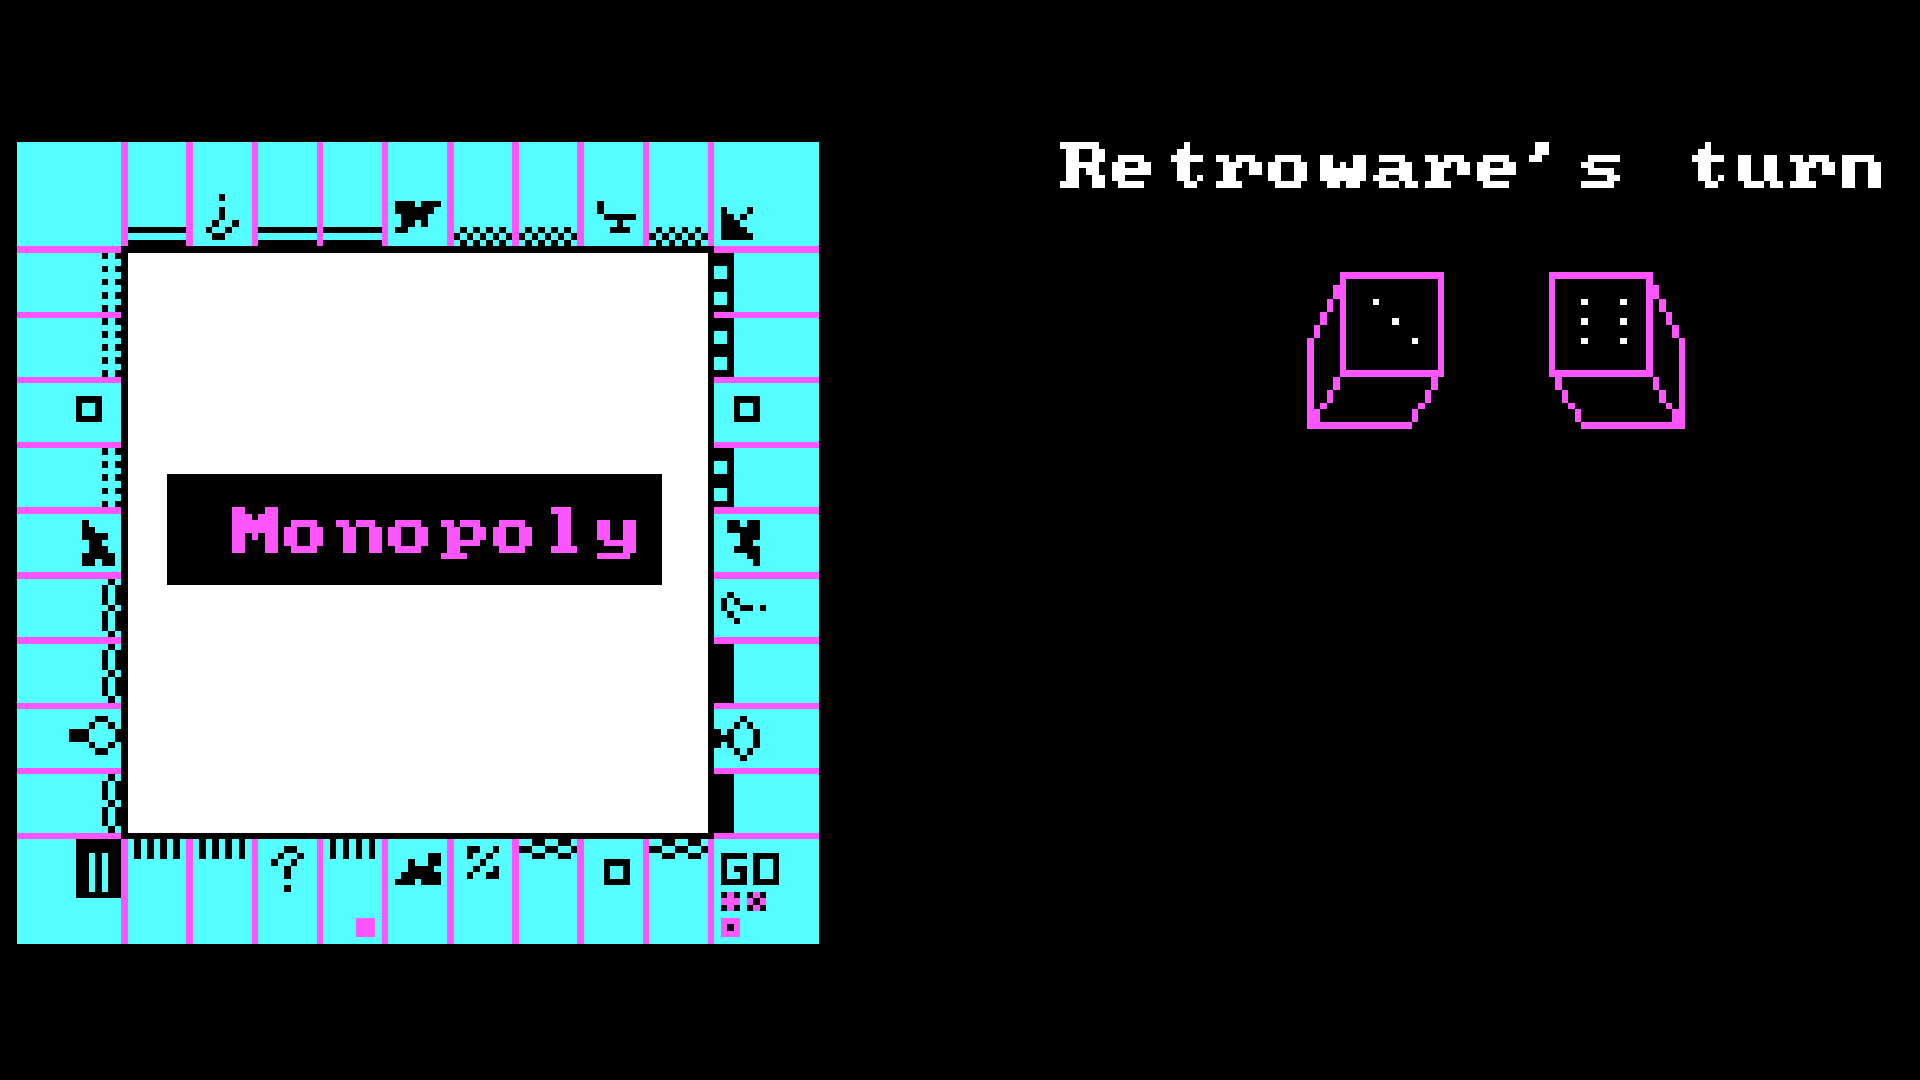 Image of gameplay from MONOPOLY (D. Gibson, 1987)